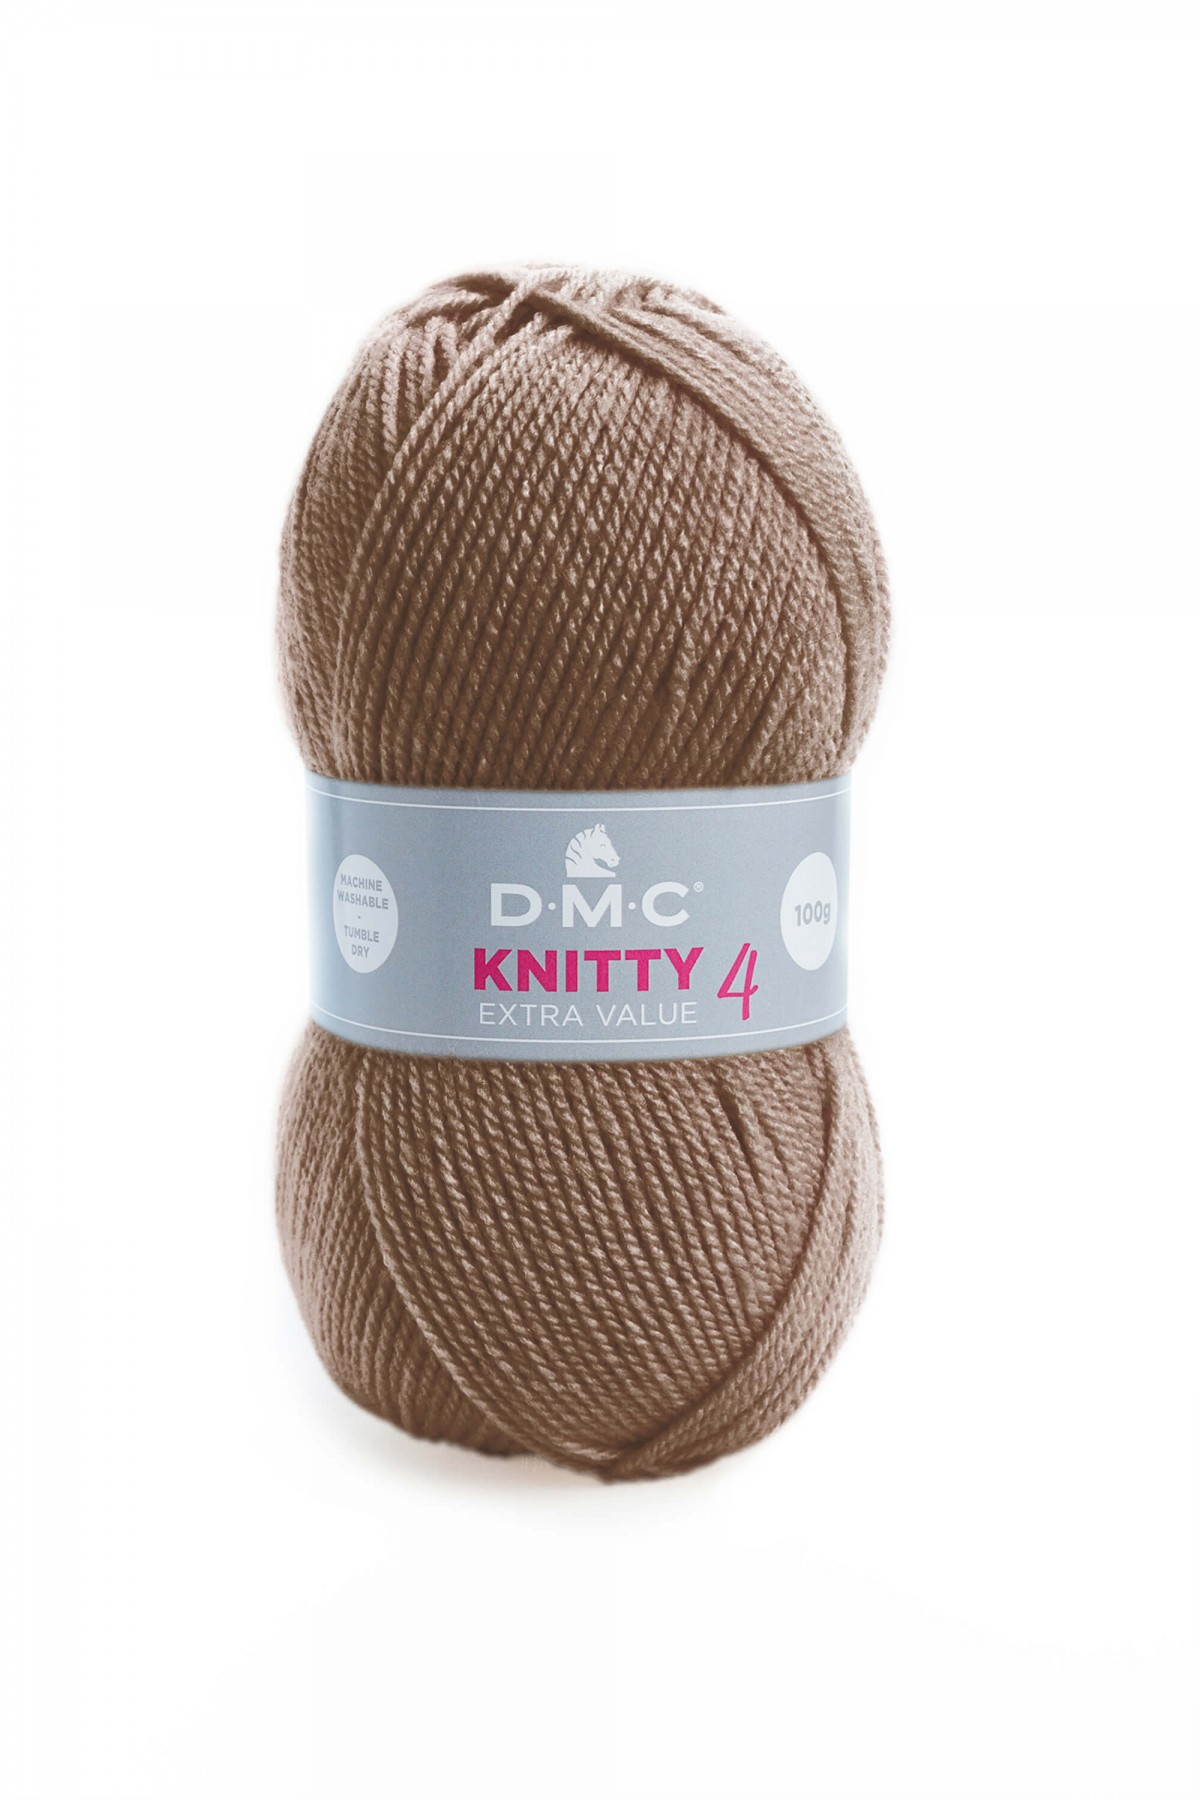 Lana acrílica DMC Knitty 4 Just Knitting 100 g 927